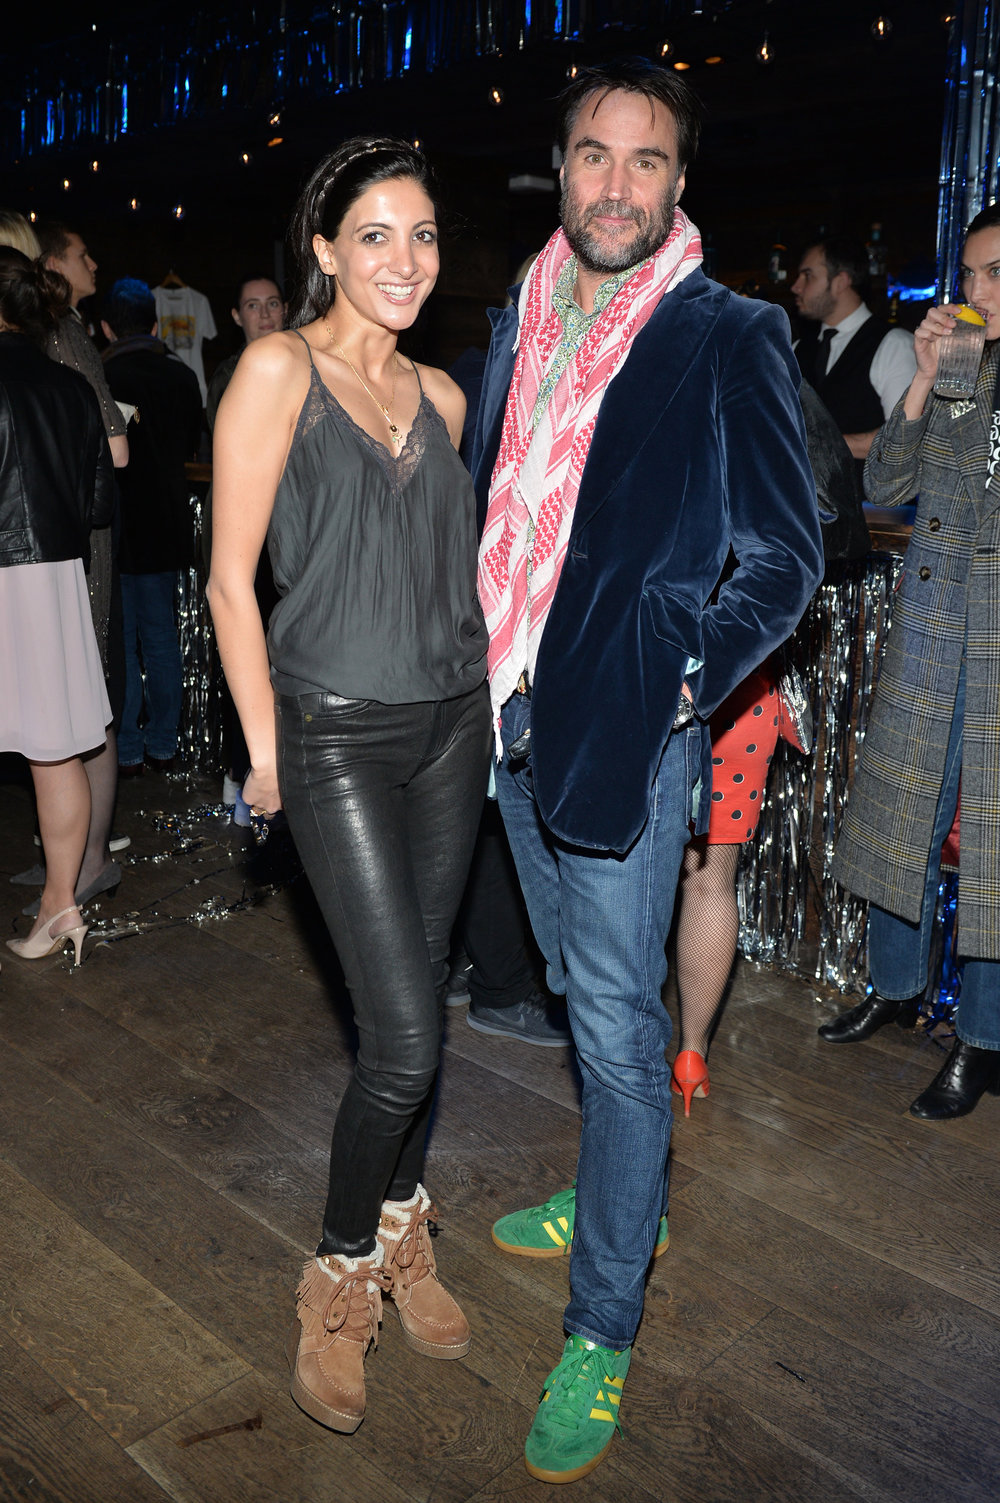 DMB-Project 0, Unemployed Magazine And The London EDITION Host Party To Celebrate The Launch Of Salt-T066.JPG